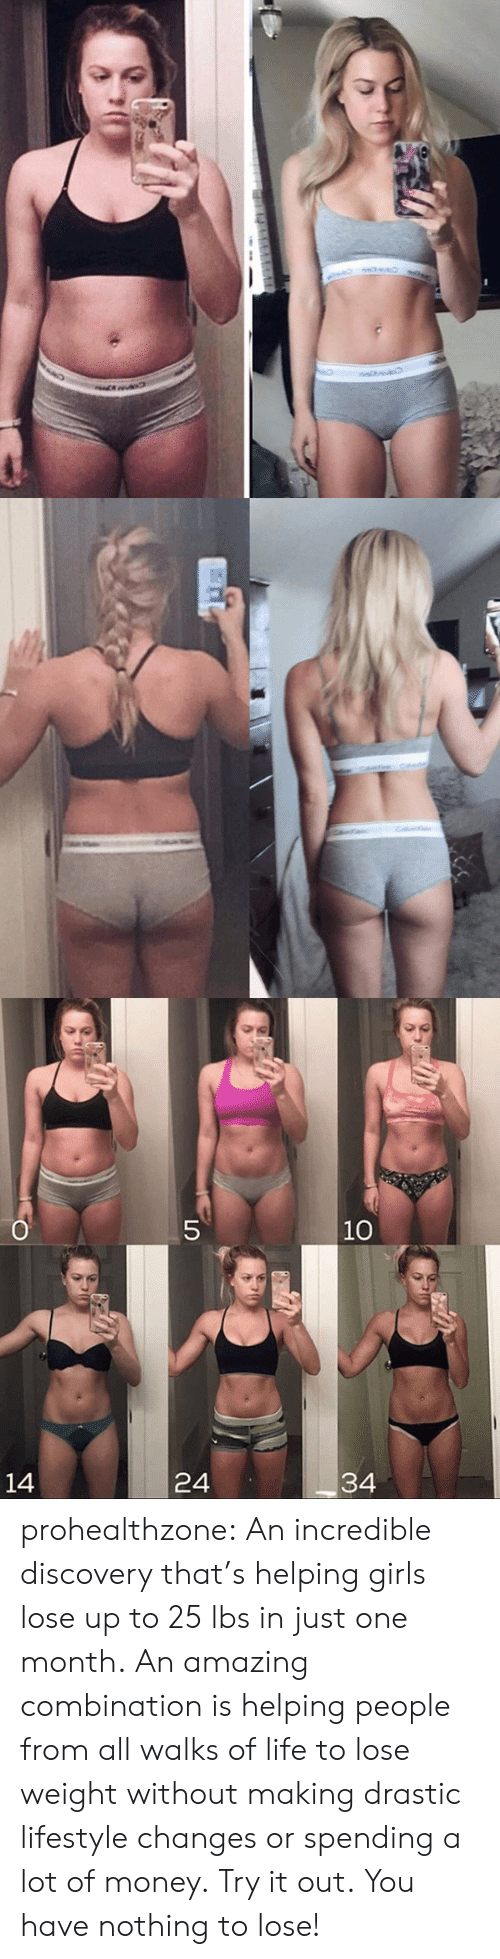 weight loss: PhoC   10  34  24  14  Brlly  LD prohealthzone: An incredible discovery that'shelping girls lose up to 25 lbs in just one month.  An amazing combination is helping people from all walks of life to lose weight without making drastic lifestyle changes or spending a lot of money. Try it out. You have nothing to lose!